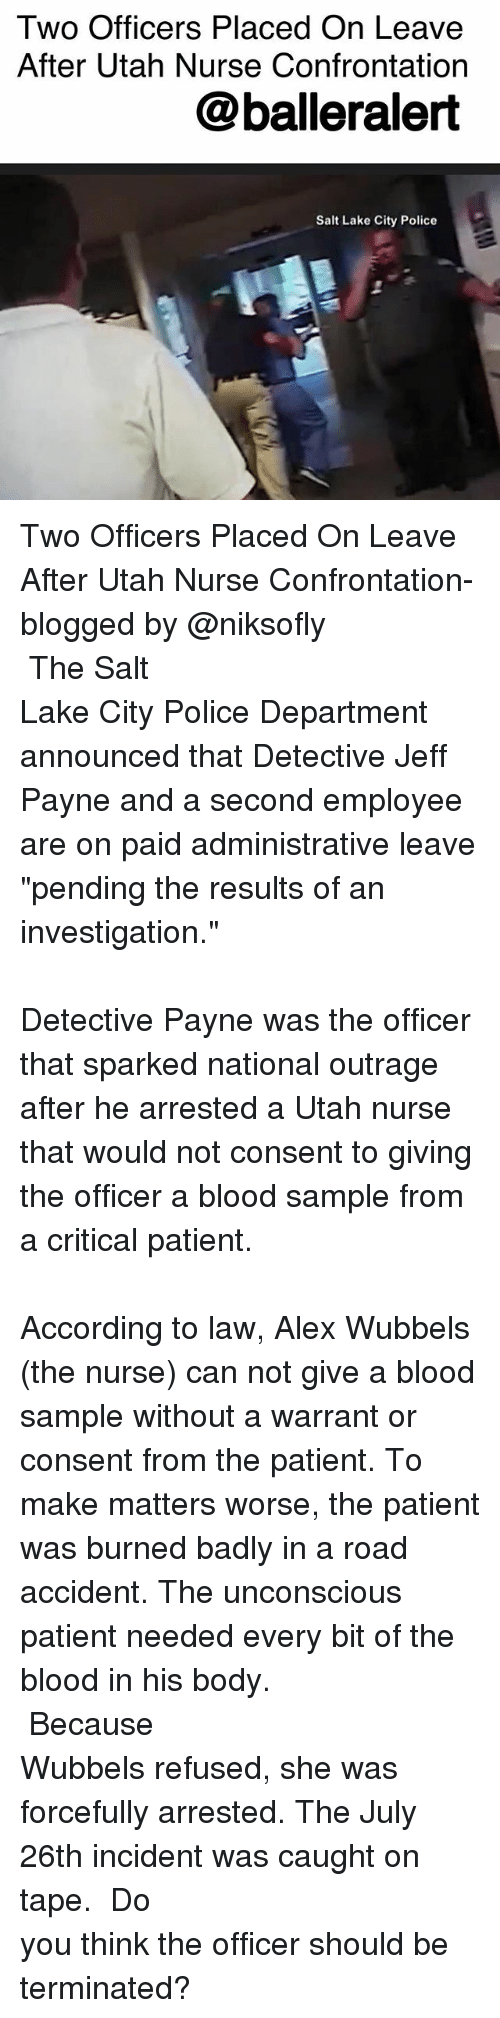 """confrontation: Two Officers Placed On Leave  After Utah Nurse Confrontation  @balleralert  Salt Lake City Police Two Officers Placed On Leave After Utah Nurse Confrontation- blogged by @niksofly ⠀⠀⠀⠀⠀⠀⠀⠀⠀⠀⠀⠀⠀⠀⠀⠀⠀⠀⠀⠀⠀⠀⠀⠀⠀⠀⠀⠀⠀⠀⠀⠀⠀⠀⠀⠀ The Salt Lake City Police Department announced that Detective Jeff Payne and a second employee are on paid administrative leave """"pending the results of an investigation."""" ⠀⠀⠀⠀⠀⠀⠀⠀⠀⠀⠀⠀⠀⠀⠀⠀⠀⠀⠀⠀⠀⠀⠀⠀⠀⠀⠀⠀⠀⠀⠀⠀⠀⠀⠀⠀ Detective Payne was the officer that sparked national outrage after he arrested a Utah nurse that would not consent to giving the officer a blood sample from a critical patient. ⠀⠀⠀⠀⠀⠀⠀⠀⠀⠀⠀⠀⠀⠀⠀⠀⠀⠀⠀⠀⠀⠀⠀⠀⠀⠀⠀⠀⠀⠀⠀⠀⠀⠀⠀⠀ According to law, Alex Wubbels (the nurse) can not give a blood sample without a warrant or consent from the patient. To make matters worse, the patient was burned badly in a road accident. The unconscious patient needed every bit of the blood in his body. ⠀⠀⠀⠀⠀⠀⠀⠀⠀⠀⠀⠀⠀⠀⠀⠀⠀⠀⠀⠀⠀⠀⠀⠀⠀⠀⠀⠀⠀⠀⠀⠀⠀⠀⠀⠀ Because Wubbels refused, she was forcefully arrested. The July 26th incident was caught on tape. ⠀⠀⠀⠀⠀⠀⠀⠀⠀⠀⠀⠀⠀⠀⠀⠀⠀⠀⠀⠀⠀⠀⠀⠀⠀⠀⠀⠀⠀⠀⠀⠀⠀⠀⠀⠀ Do you think the officer should be terminated?"""